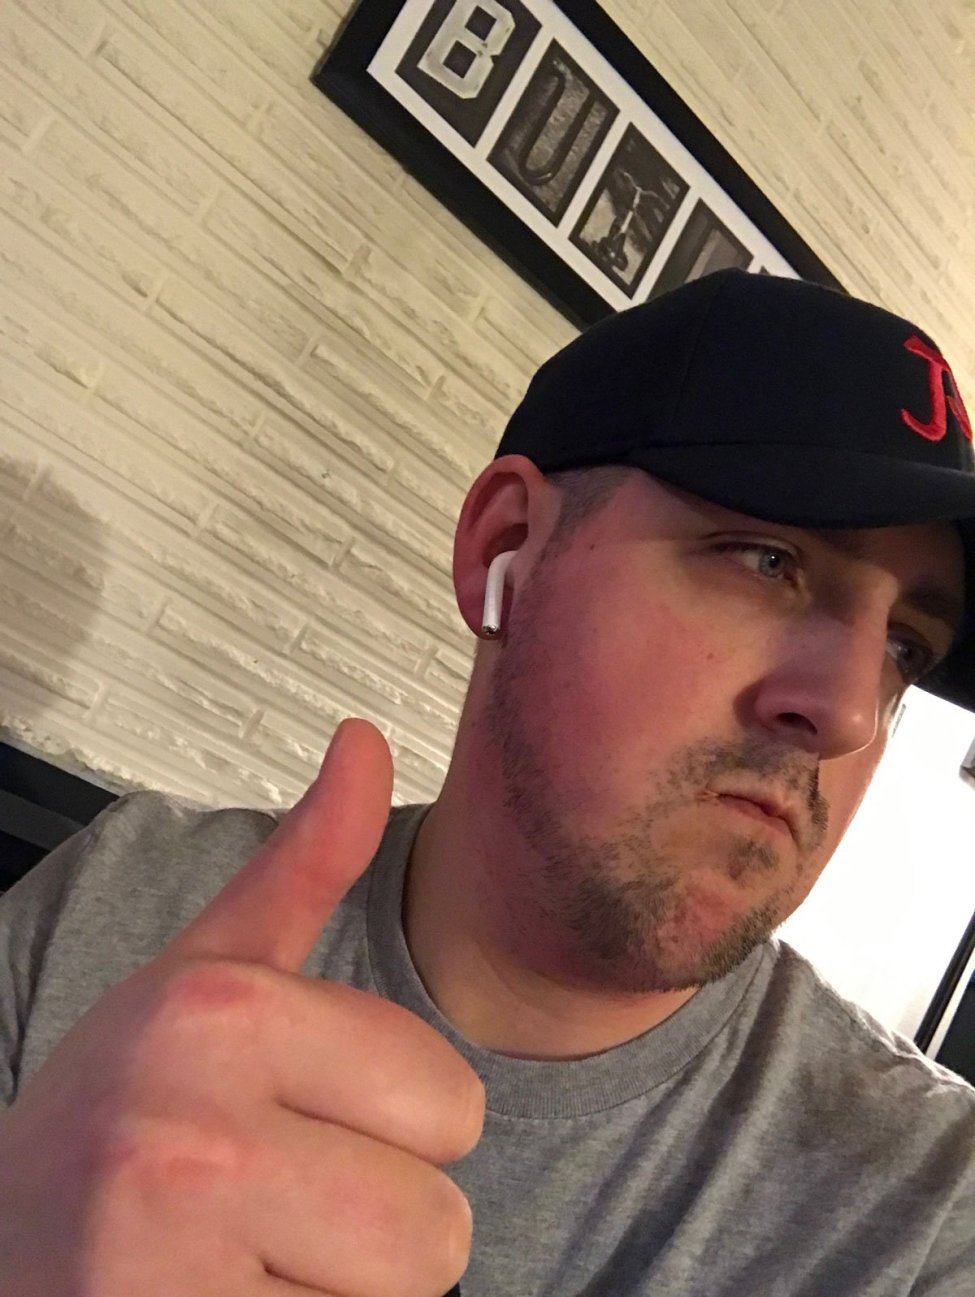 Jared gives AirPods a thumbs up.